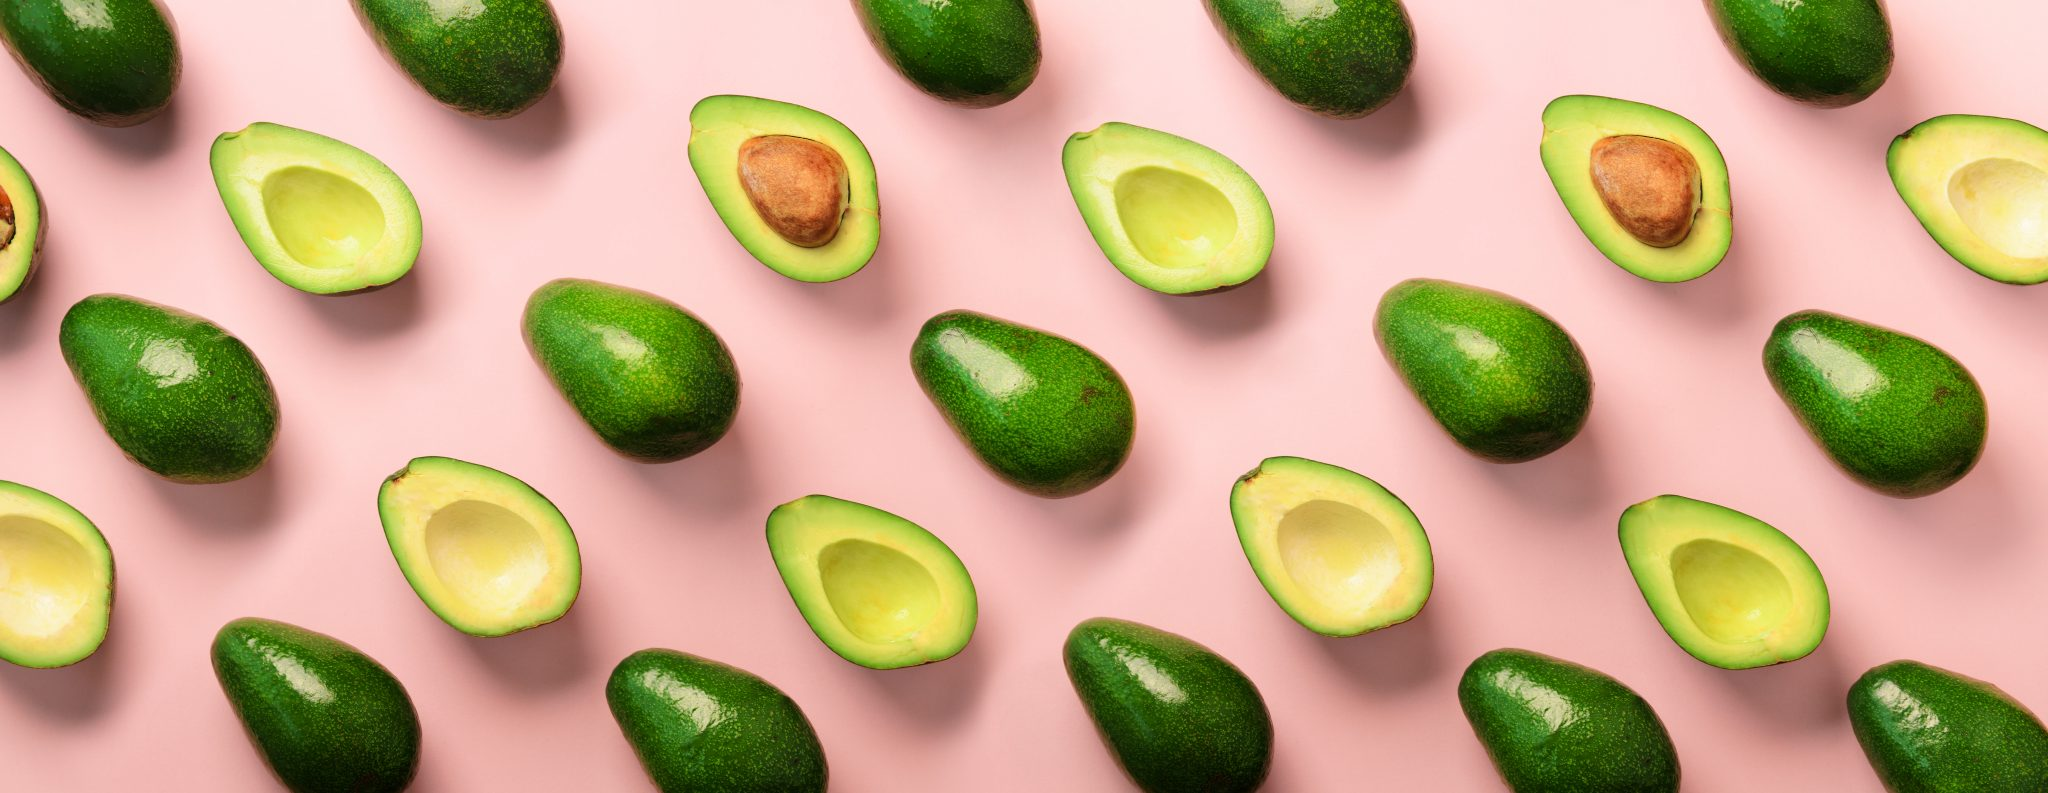 avocados on a pink background